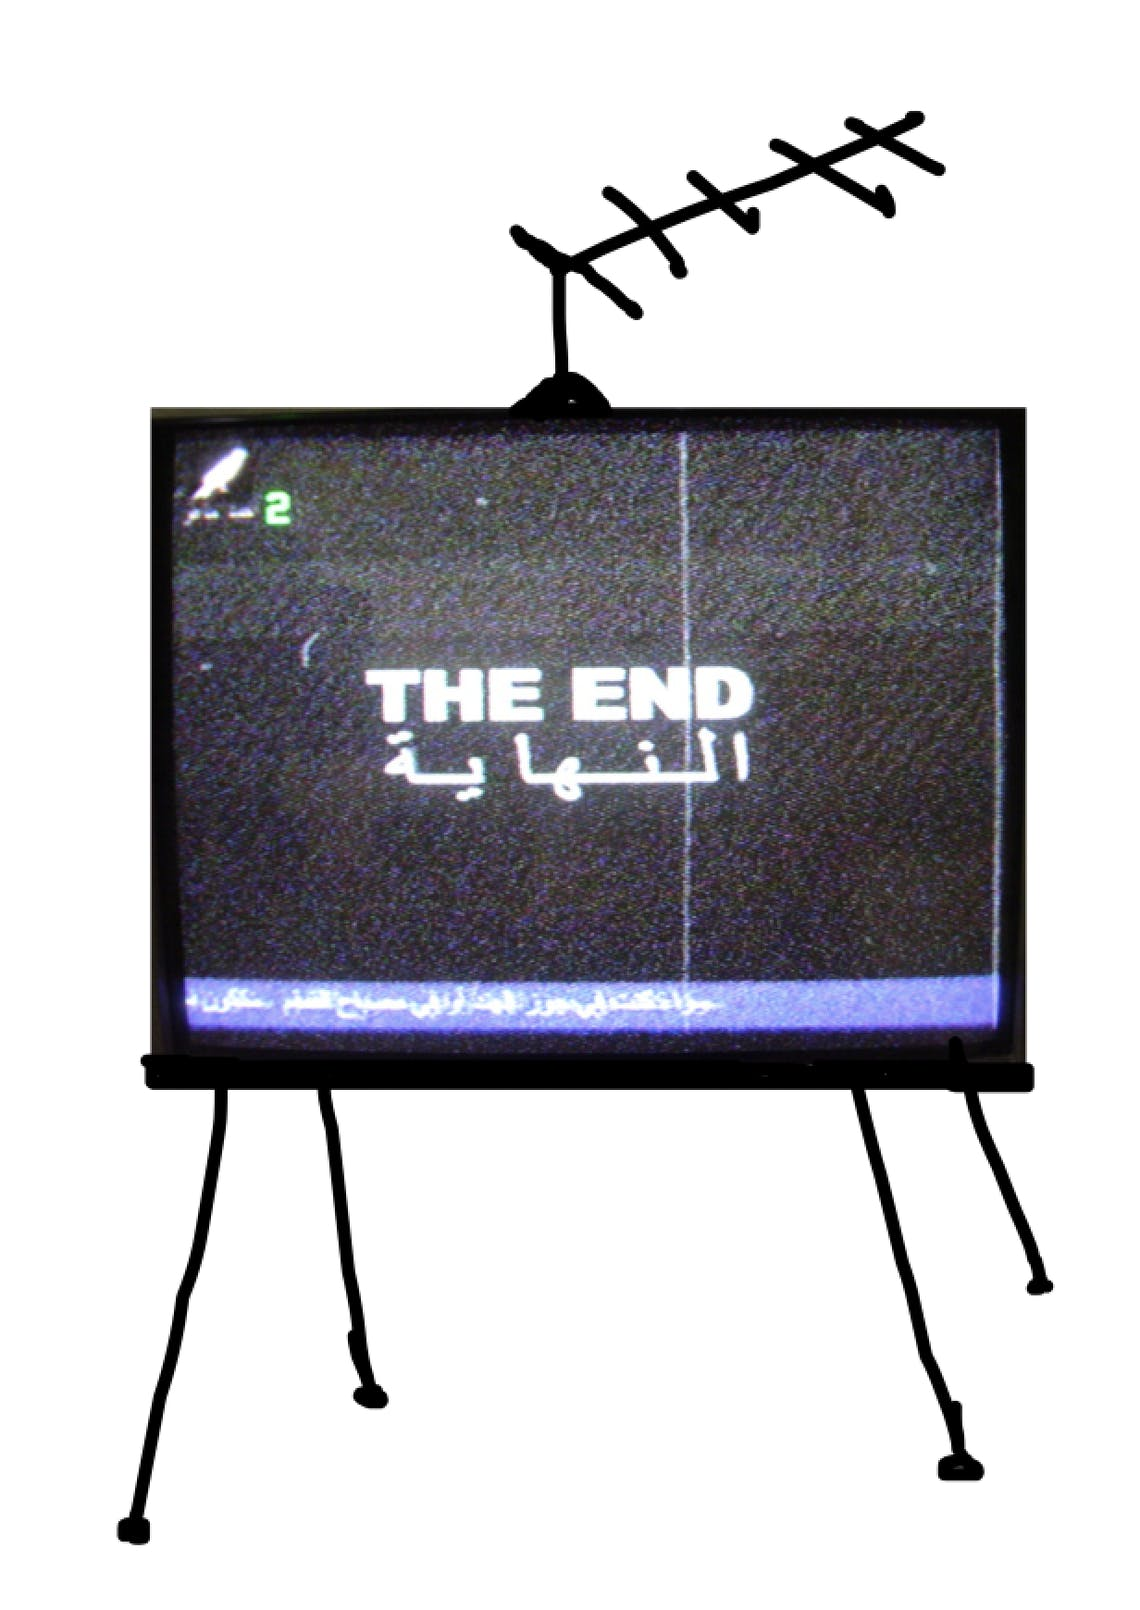 The End, Ahmed Mater